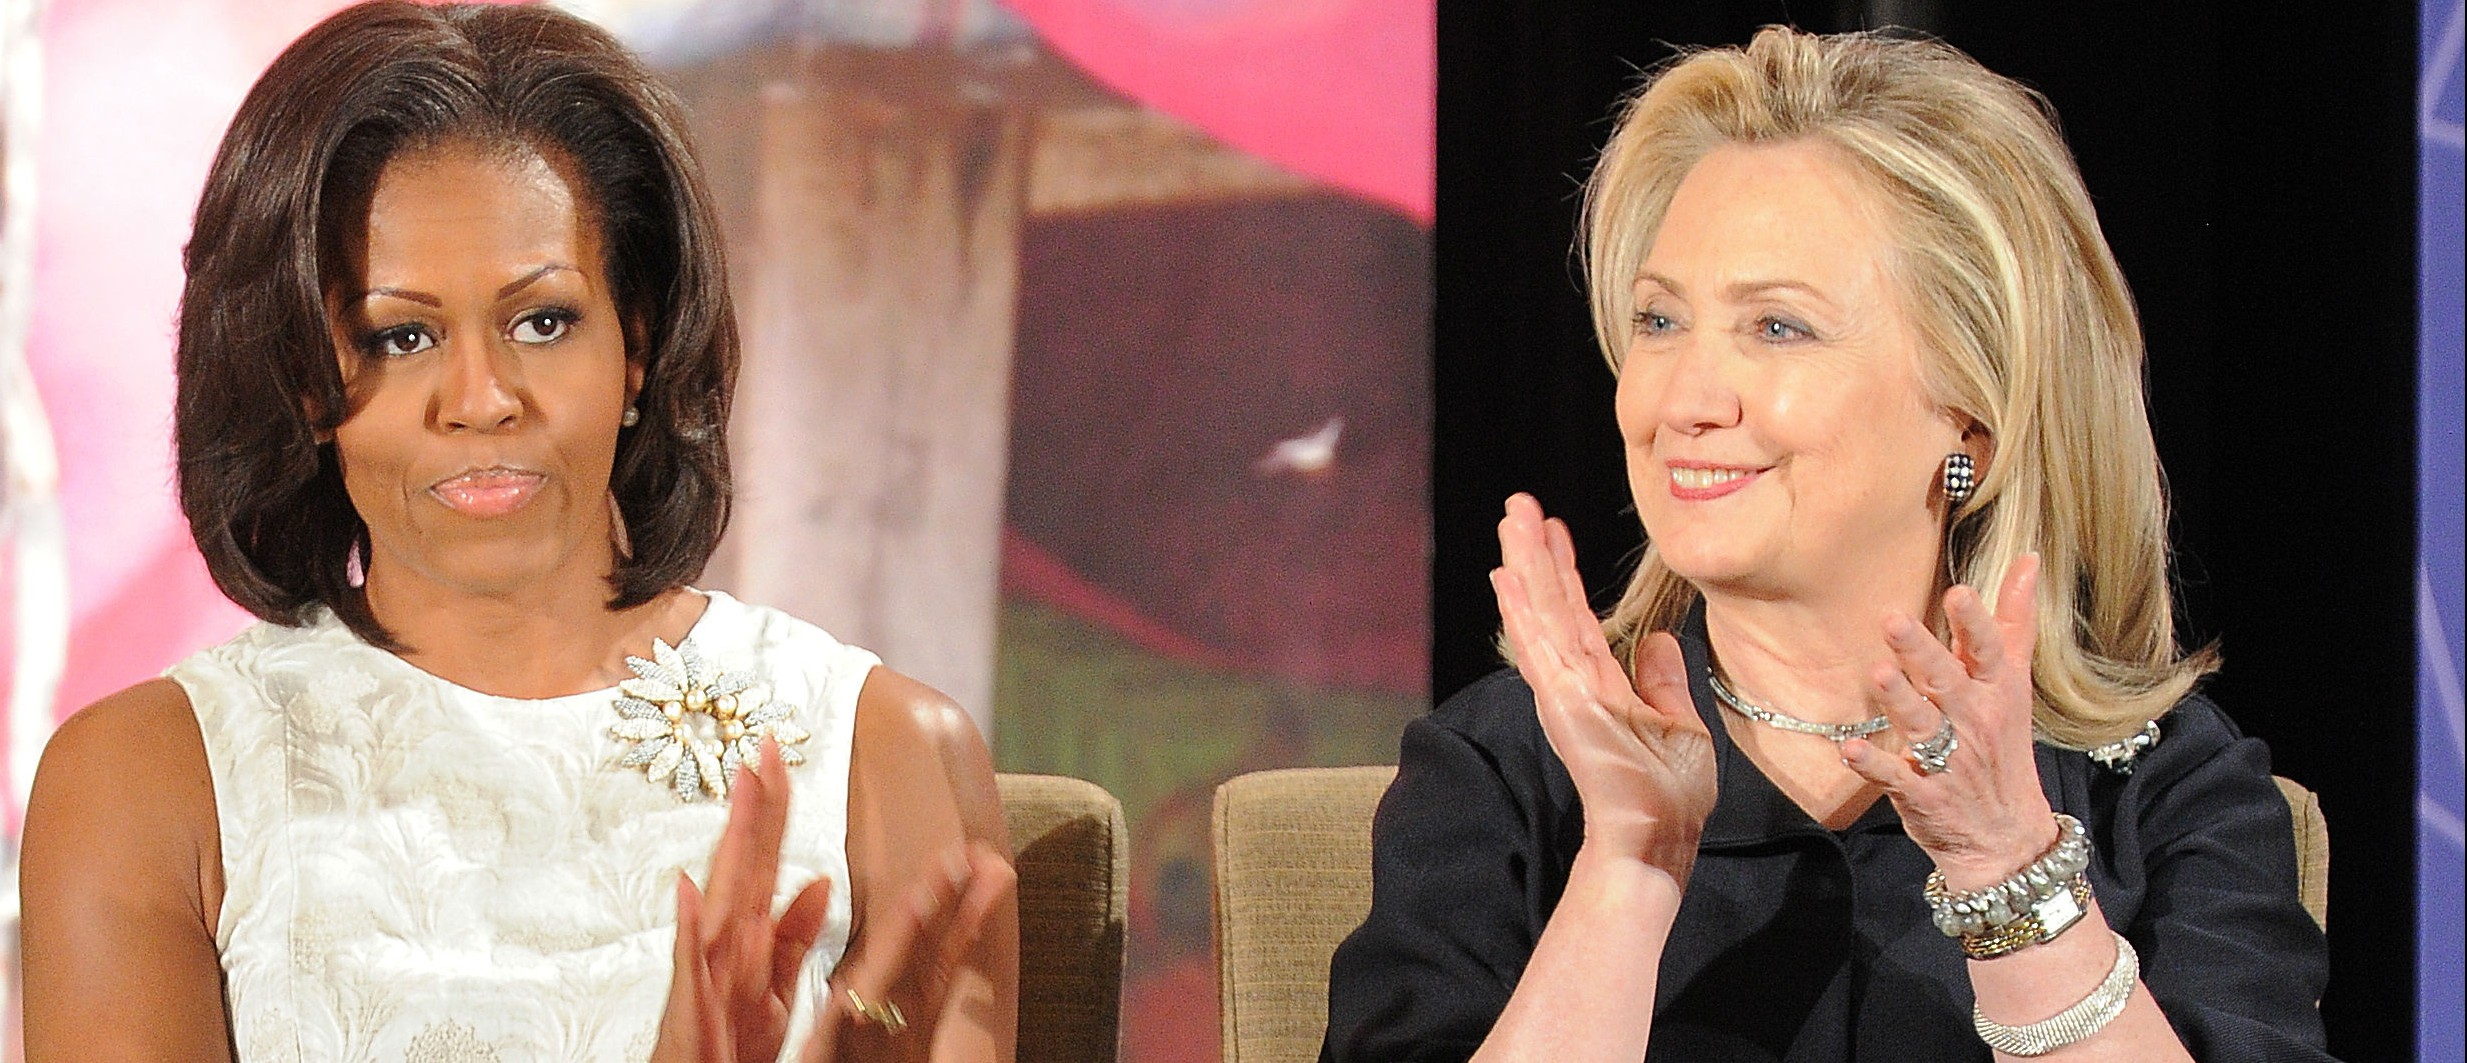 Michelle Obama hates Hillary Clinton, book claims (Photo: Getty Images)